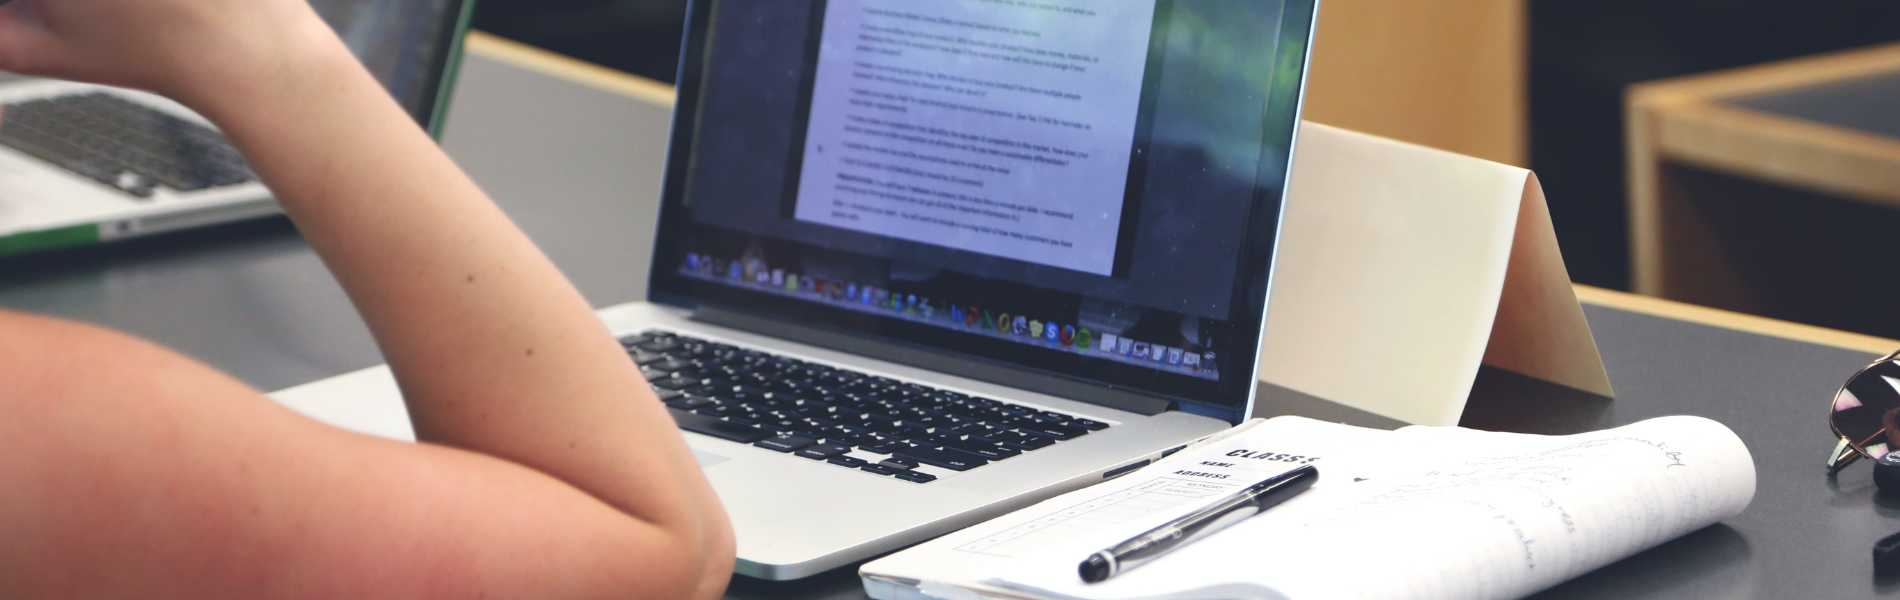 Methods to make your online courses stand out